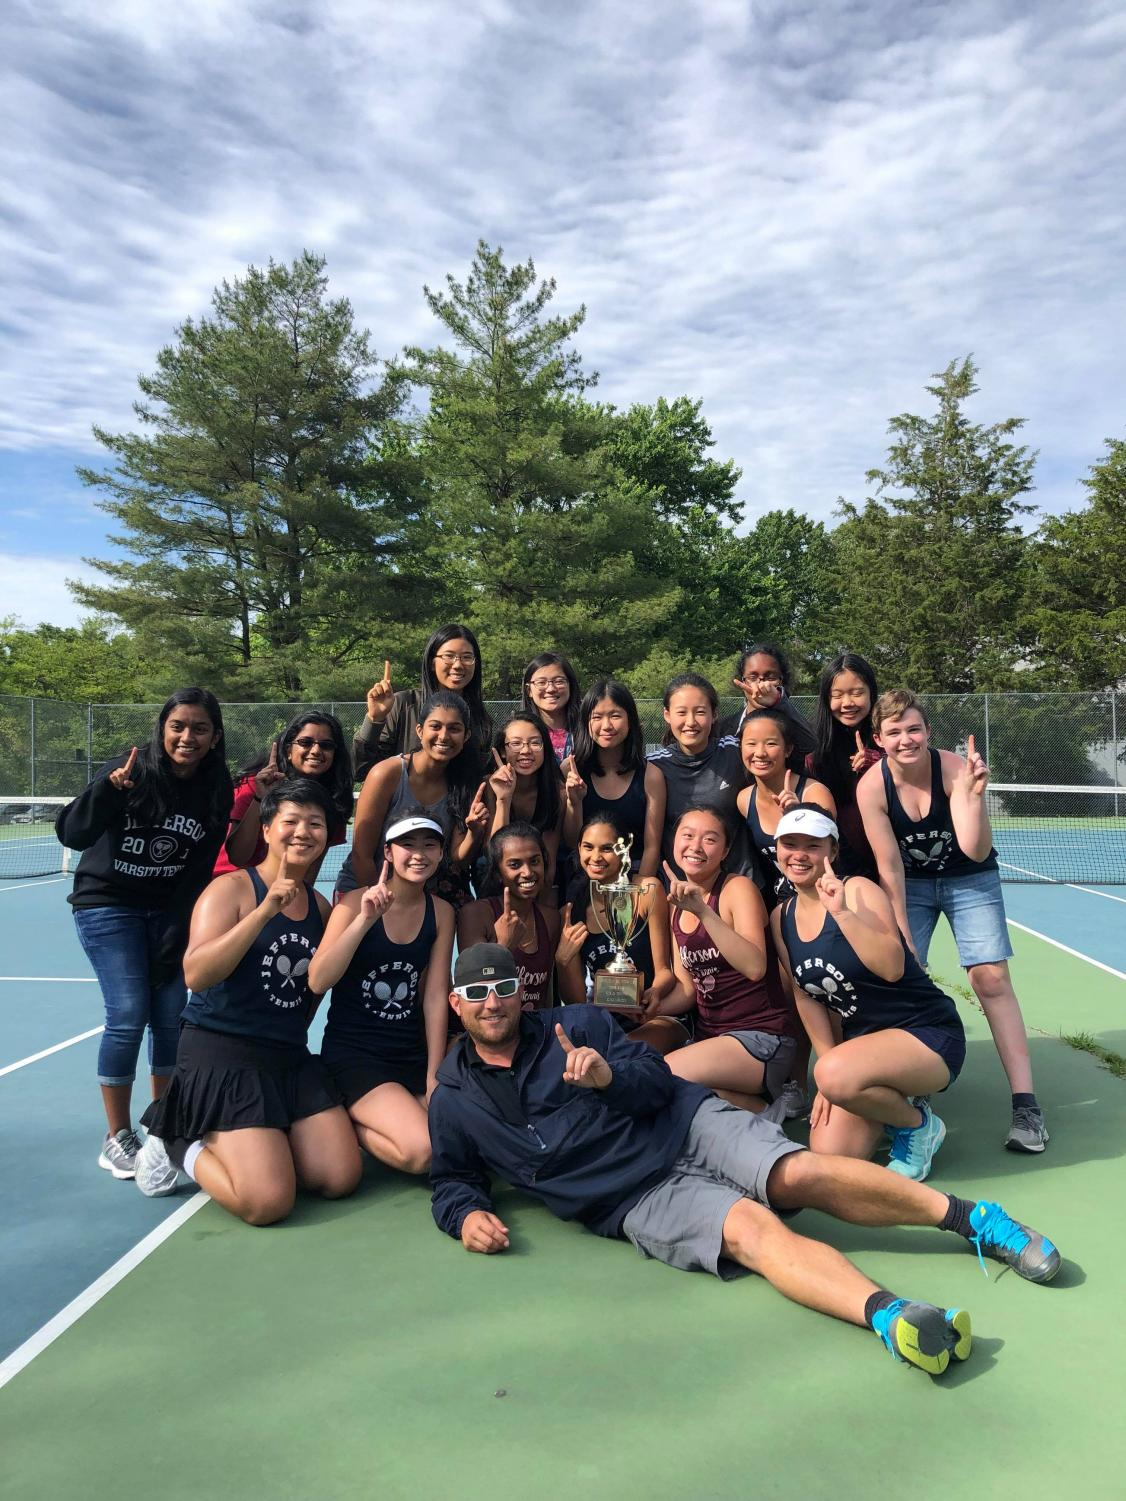 The Jefferson girls' tennis team poses for a photo after their victory at the 5C regional competition.